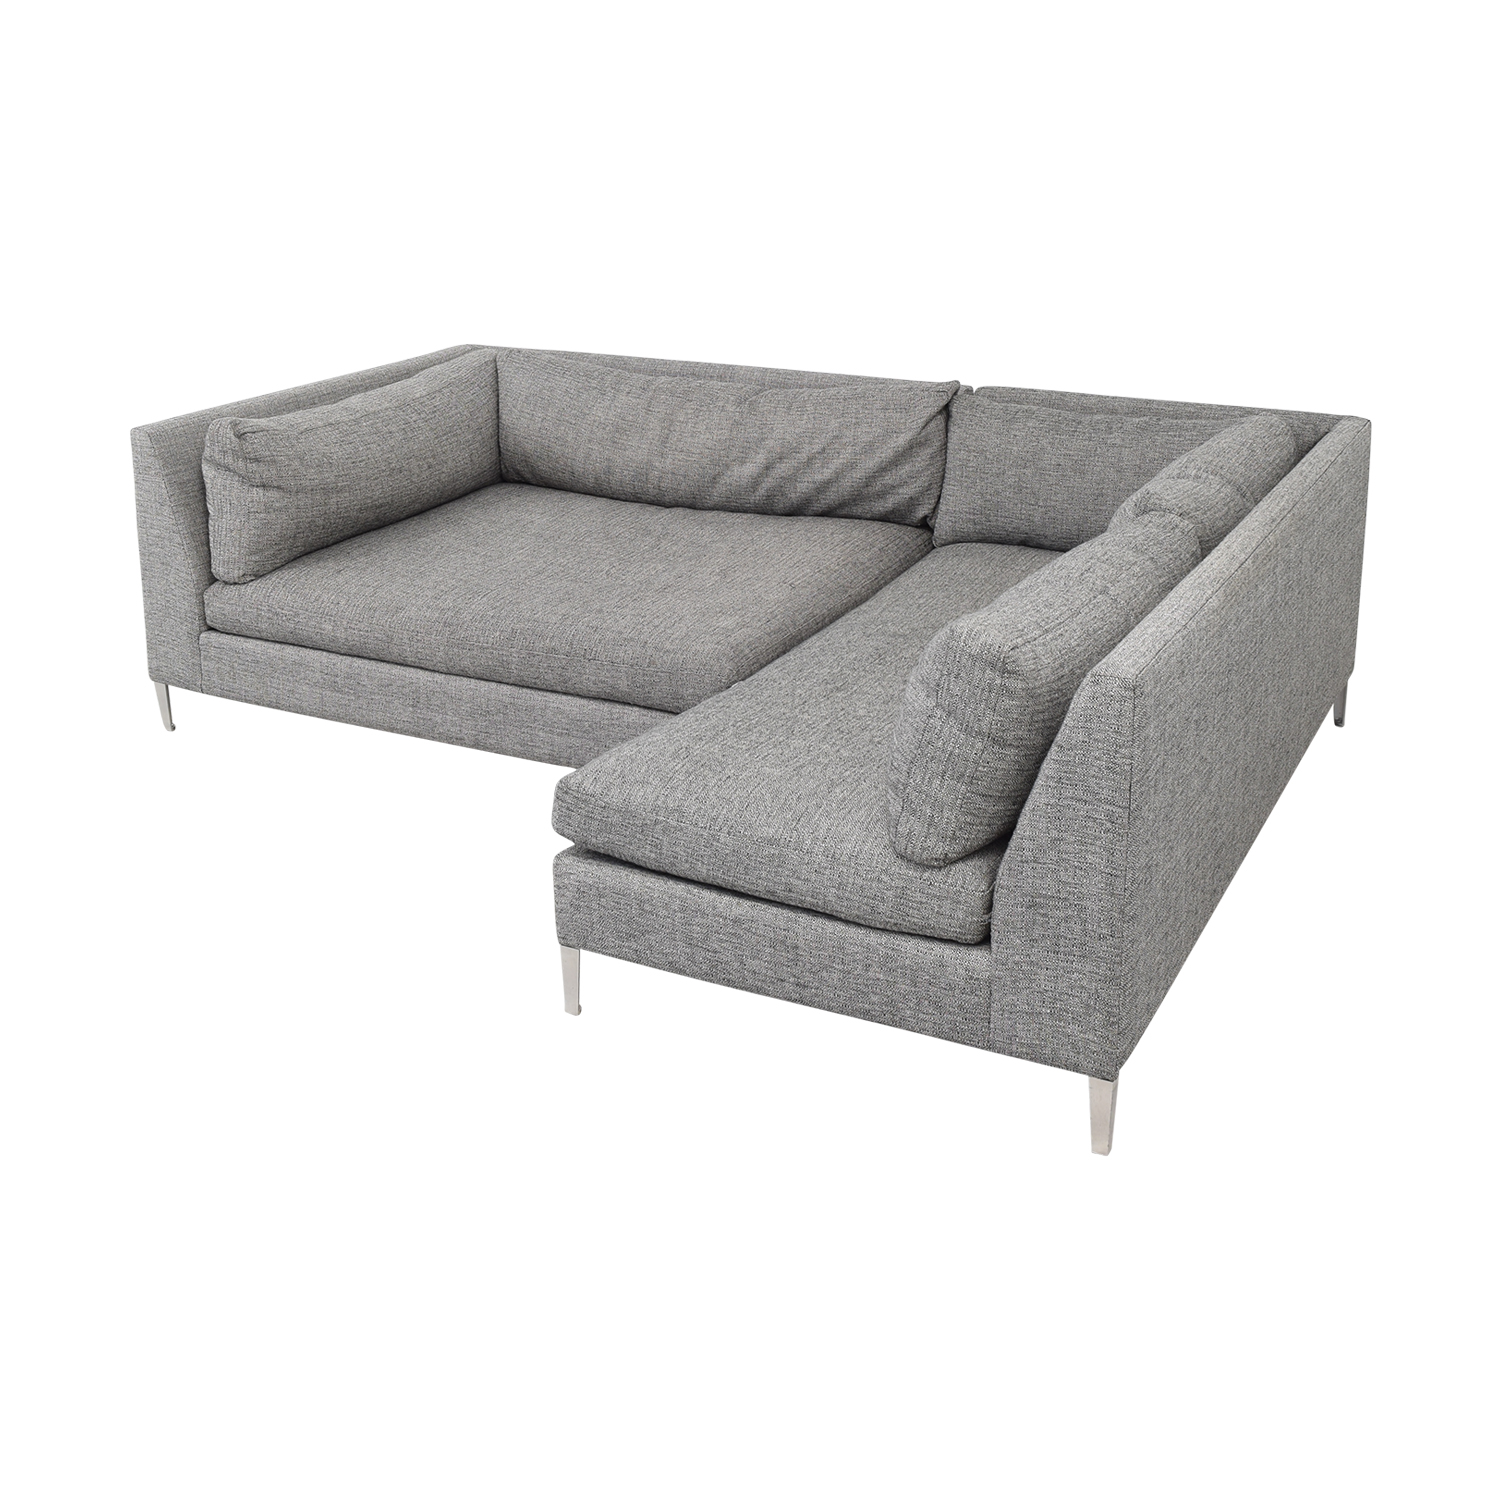 CB2 CB2 Two Piece Sectional Sofa with Chaise Sofas